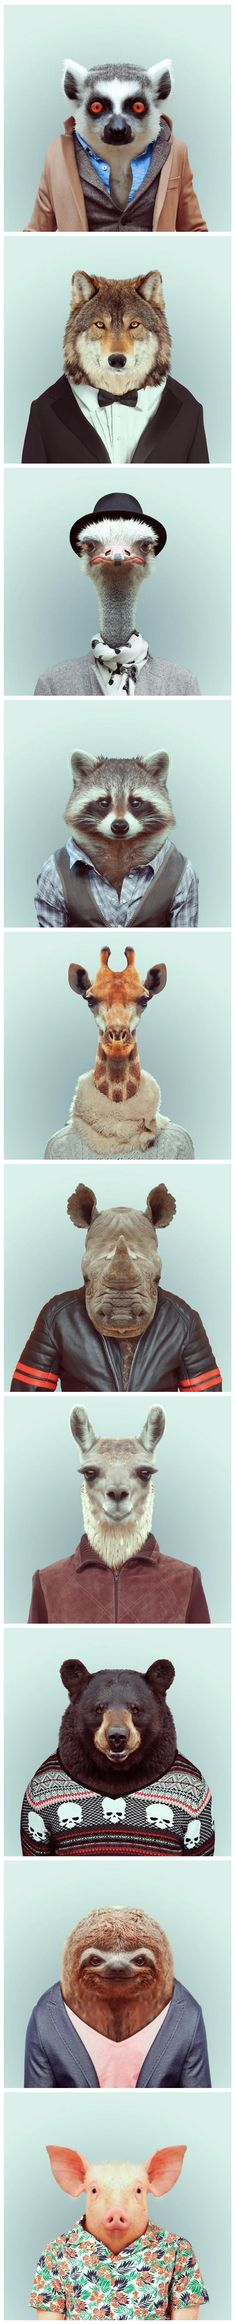 Extremely dapper animals.